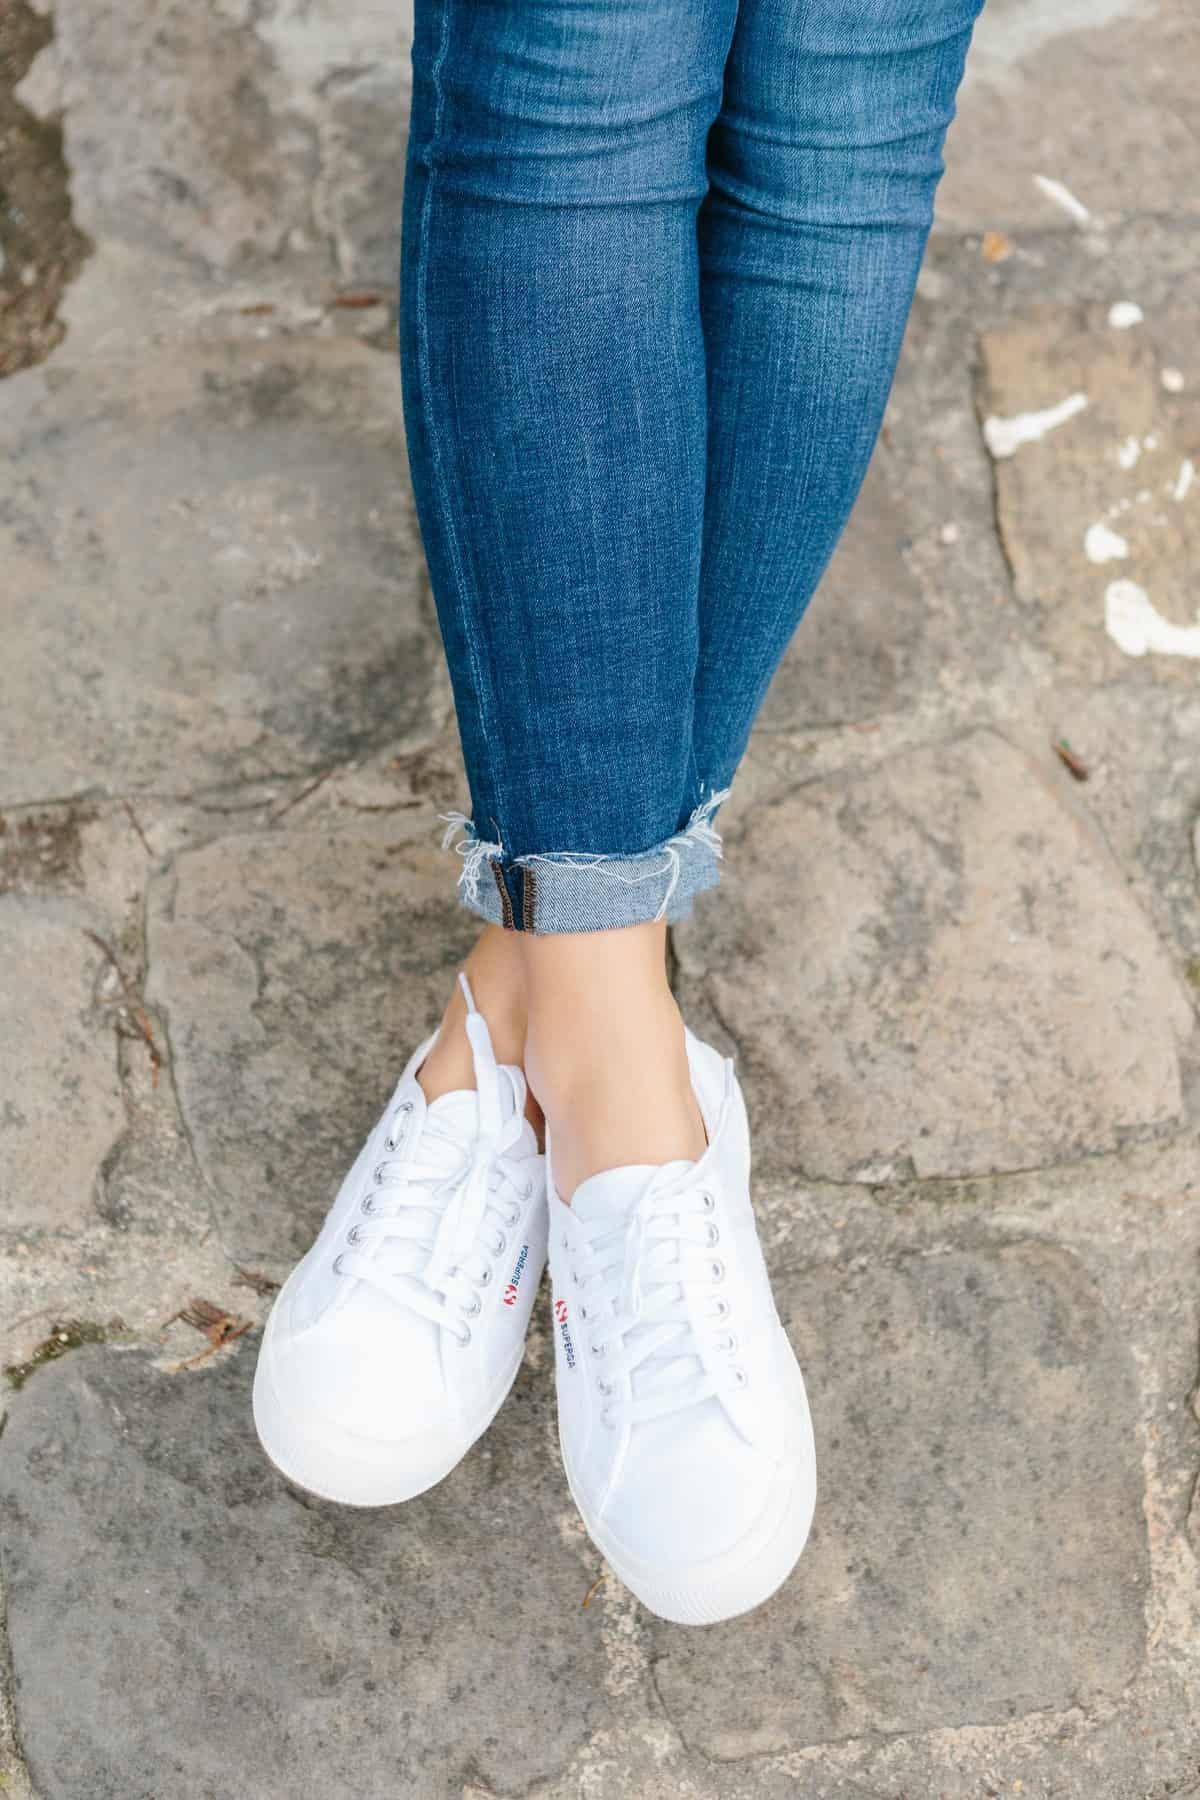 Supergas and jeans